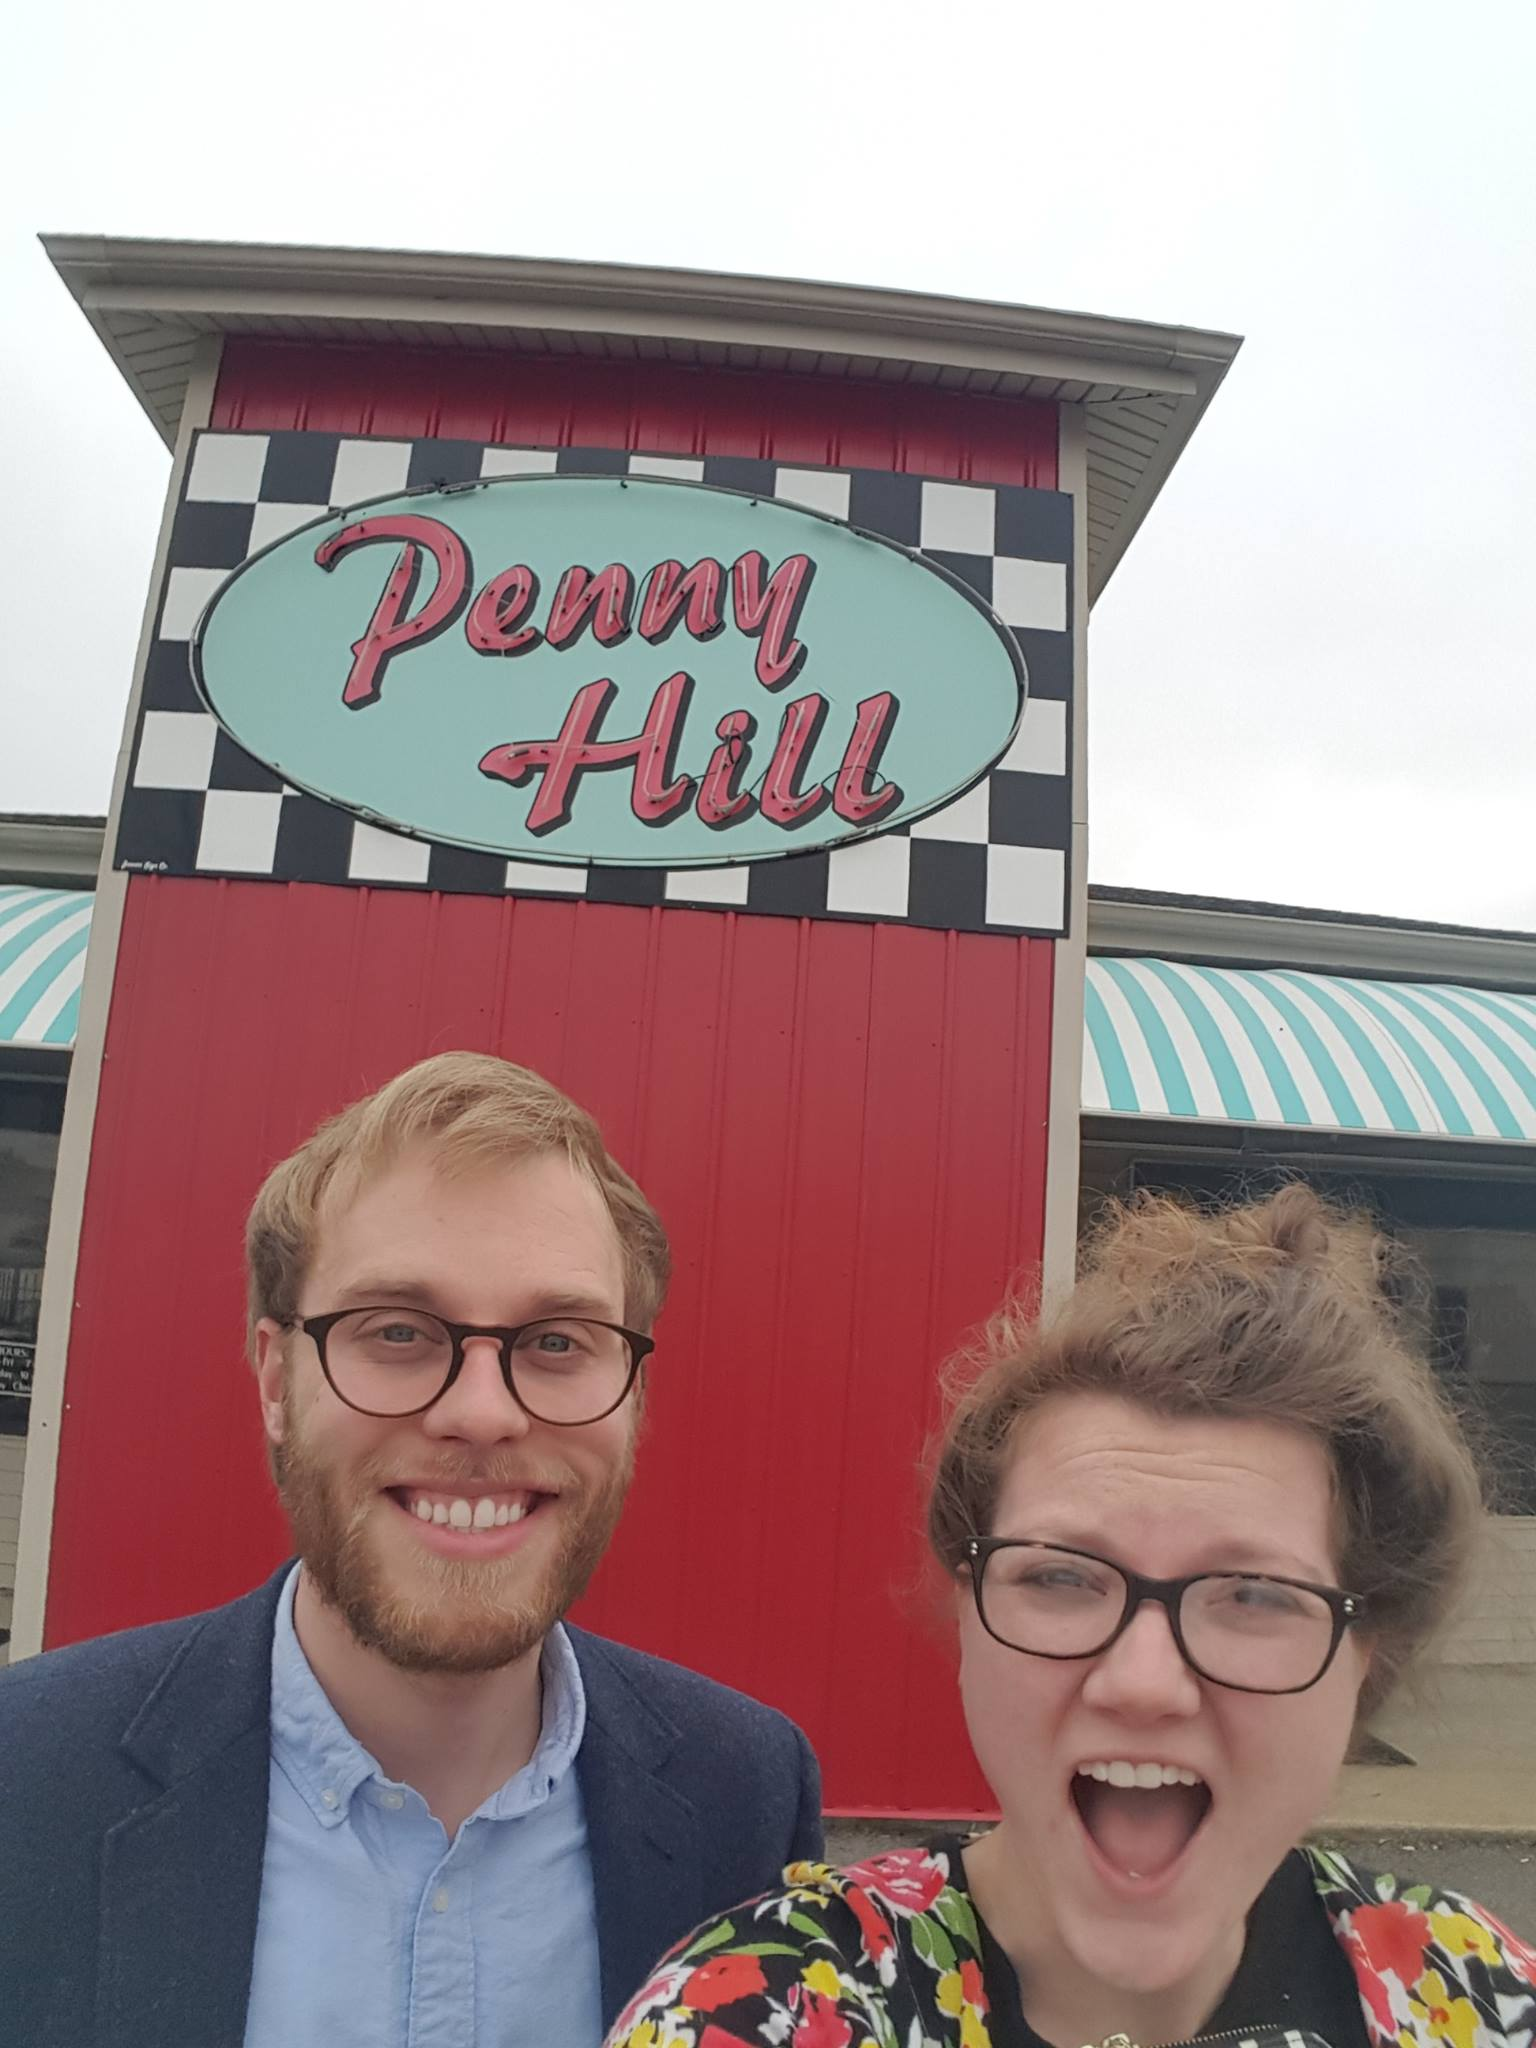 After my dentist appointment at  Sullivan Dentistry , John and I had just had a DELICIOUS lunch at  Penny Hill  in Union City. Gyros and sweet potato fries are the way to go!